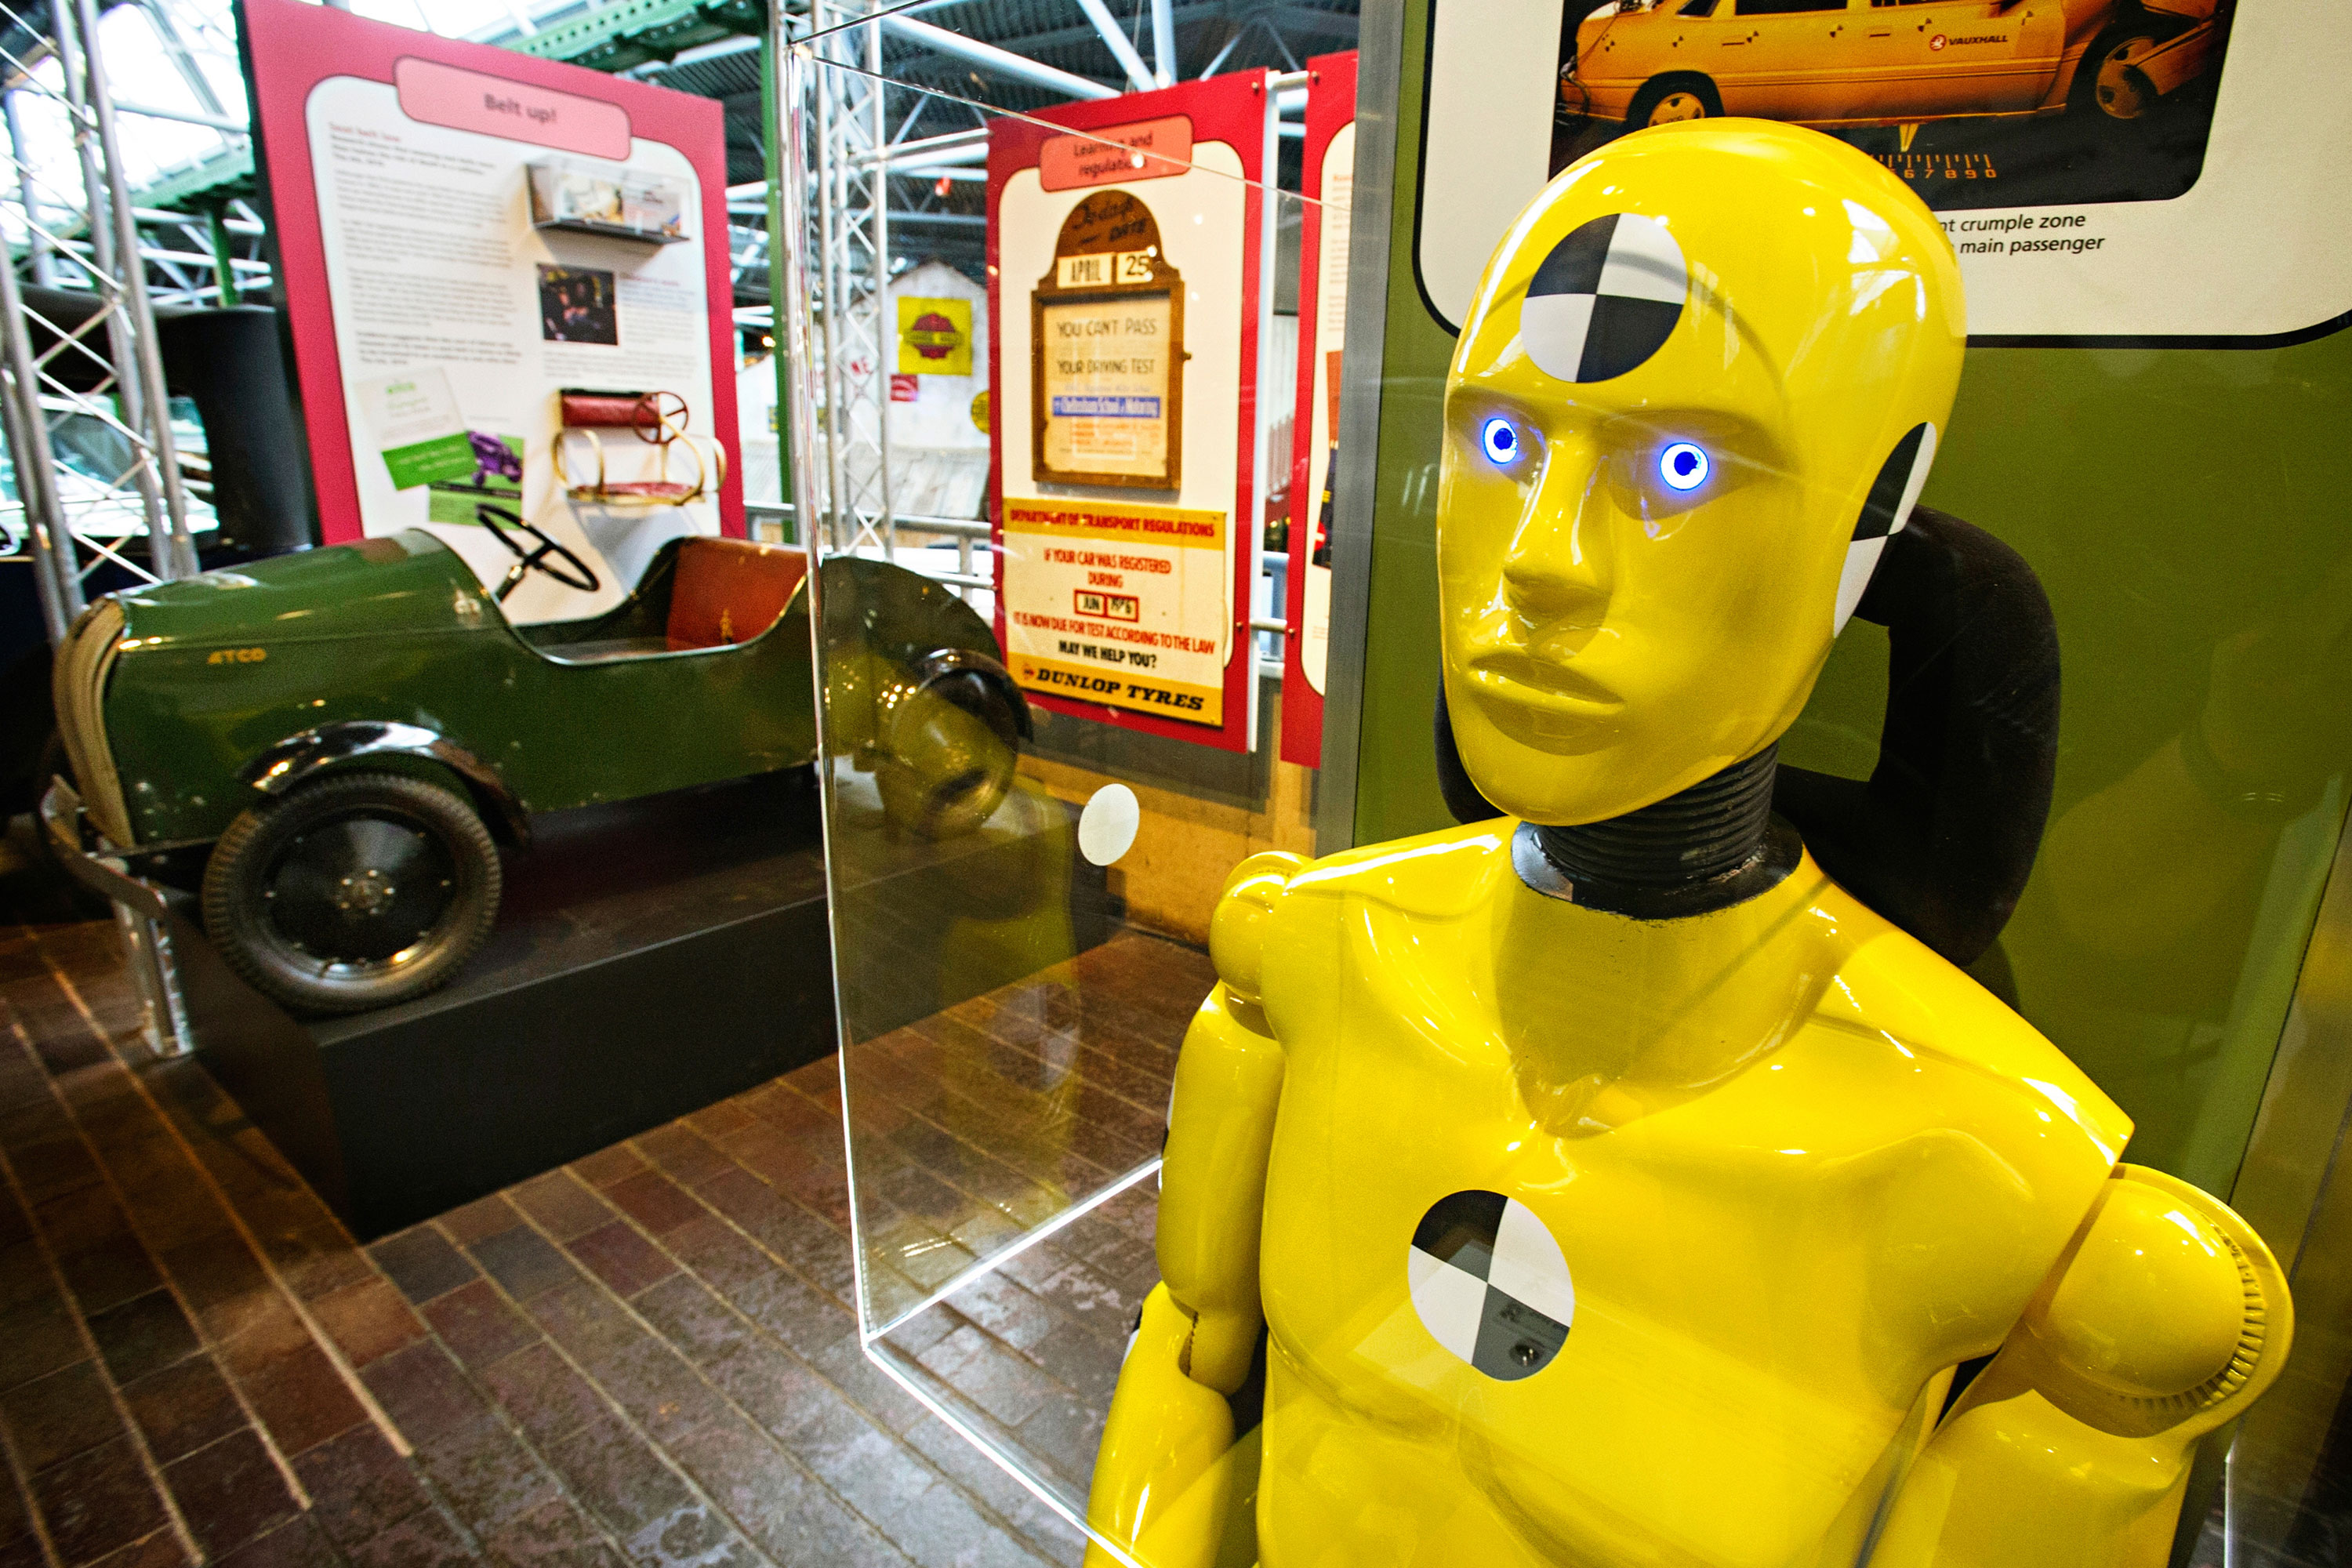 Crash test dummy on display at the National Motor Museum